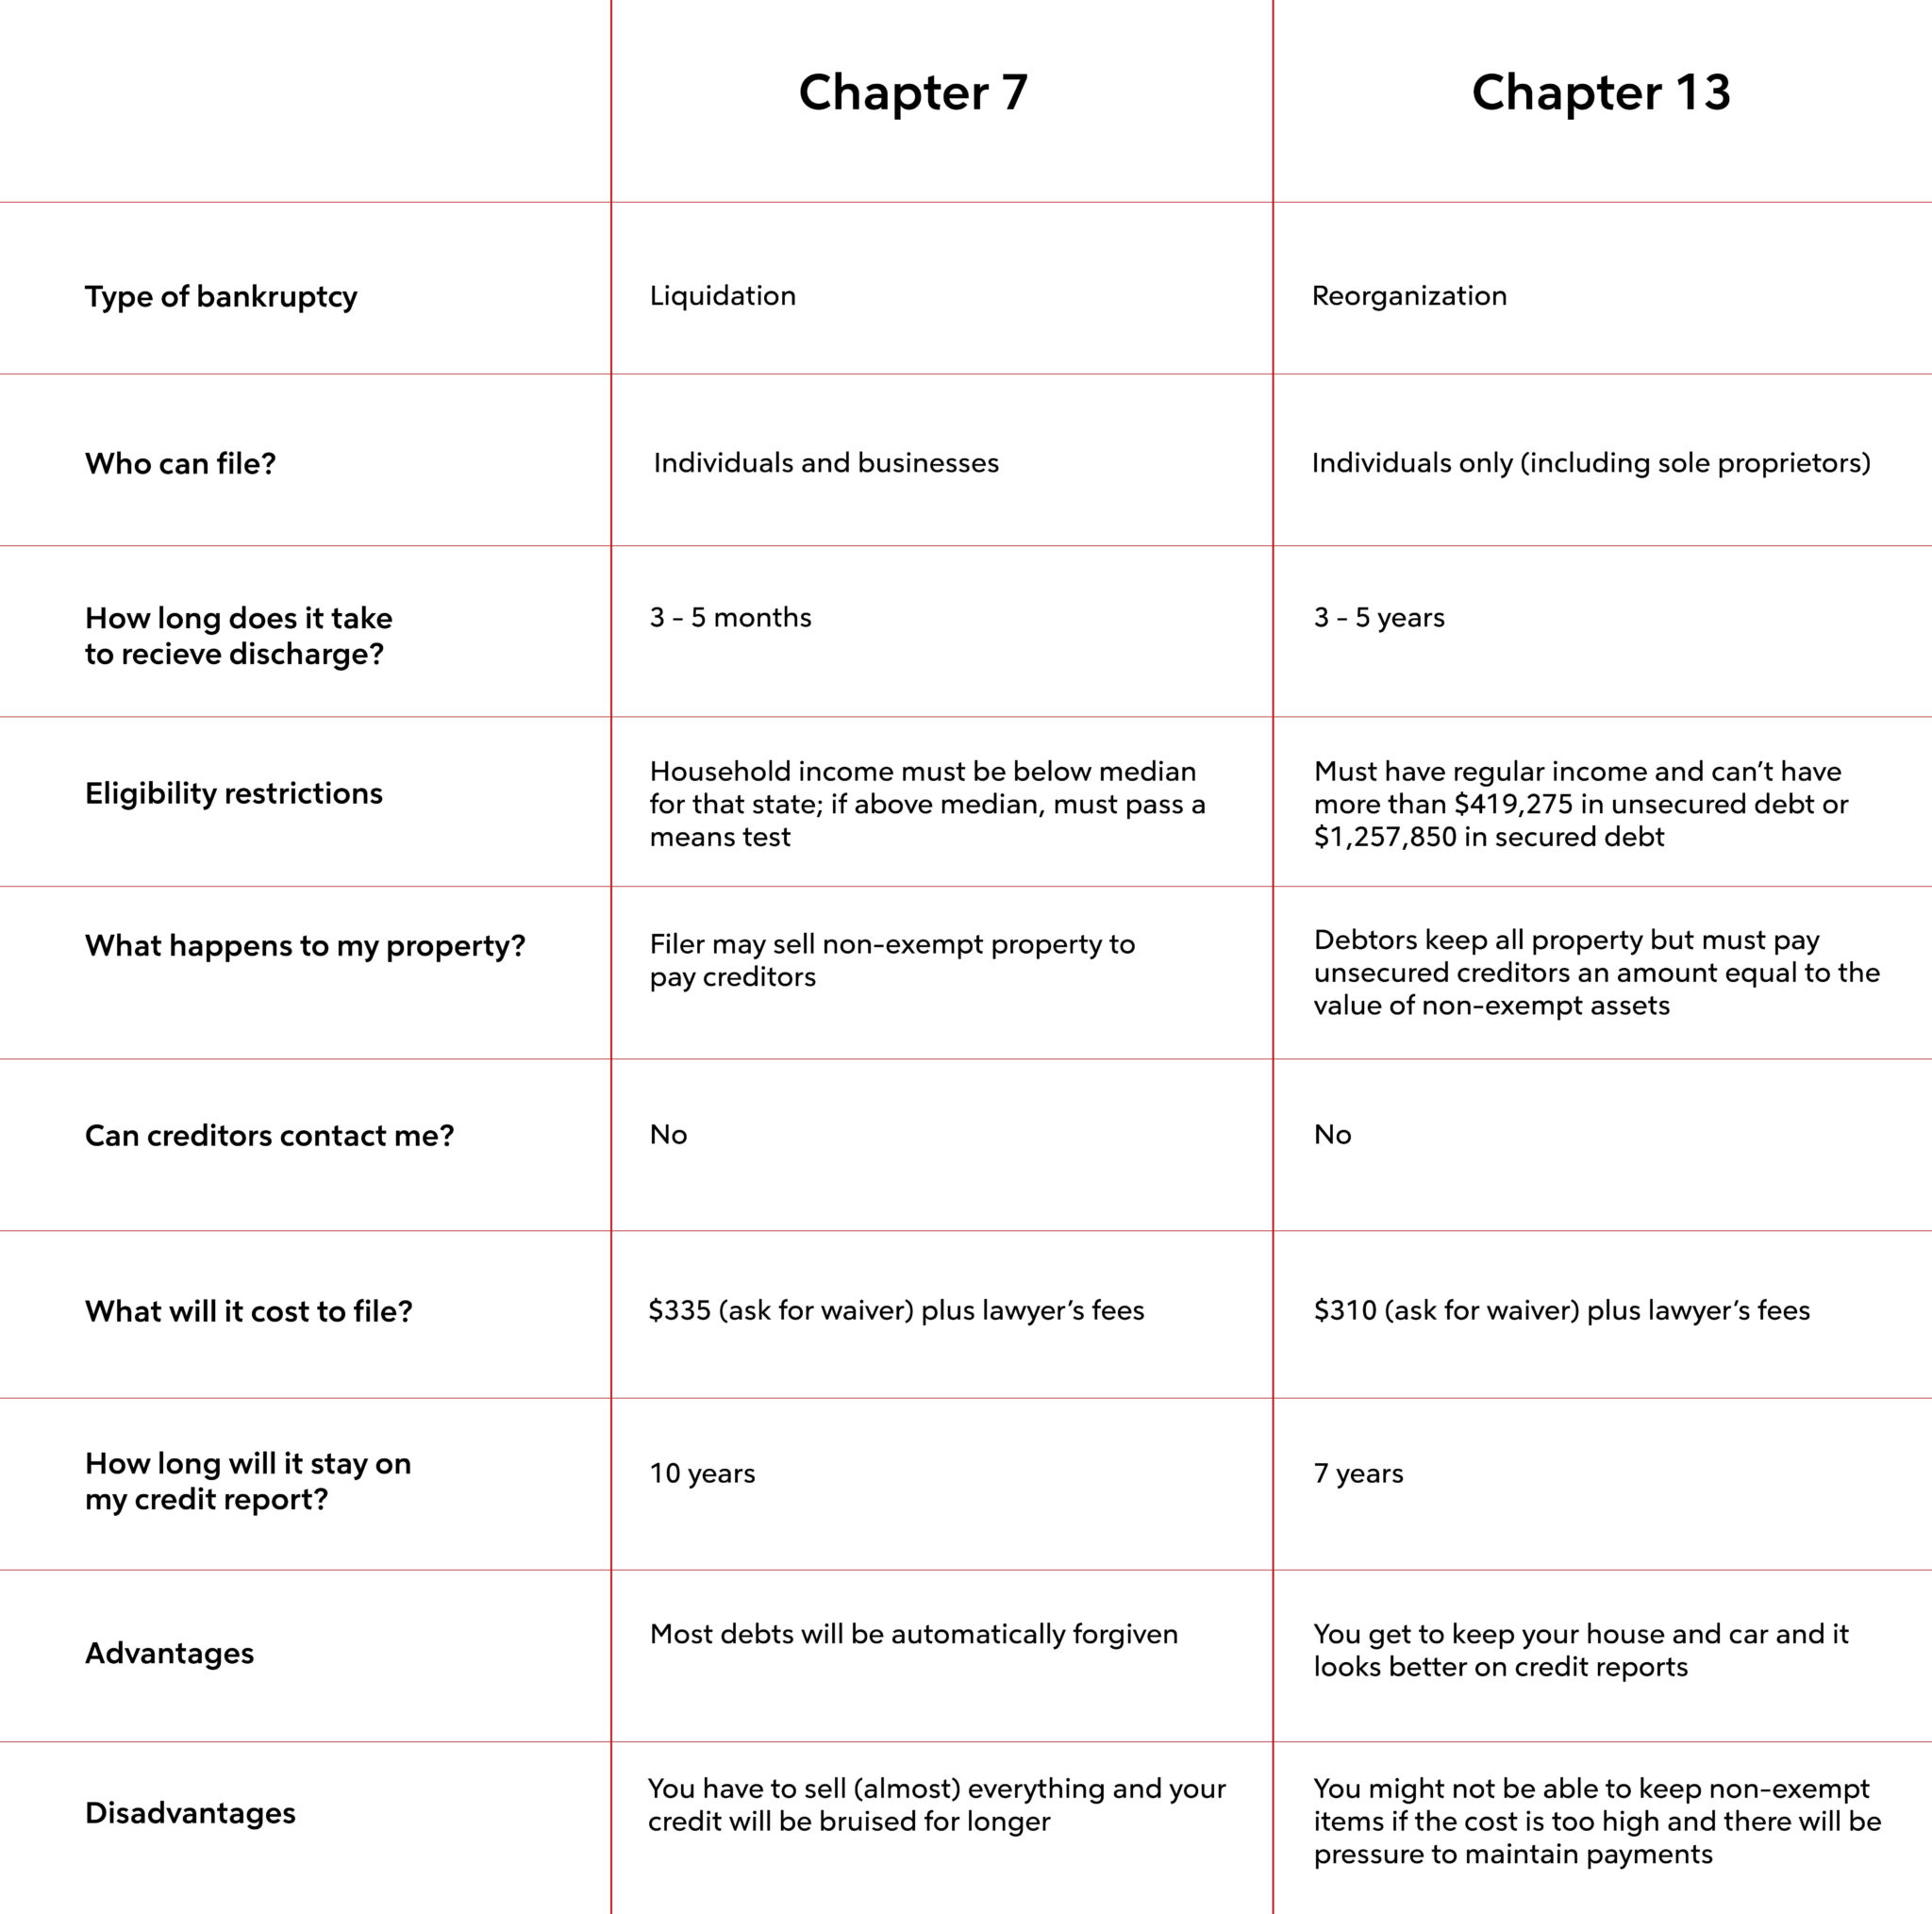 Chapter 7 Vs Chapter 13 Bankruptcy Explained